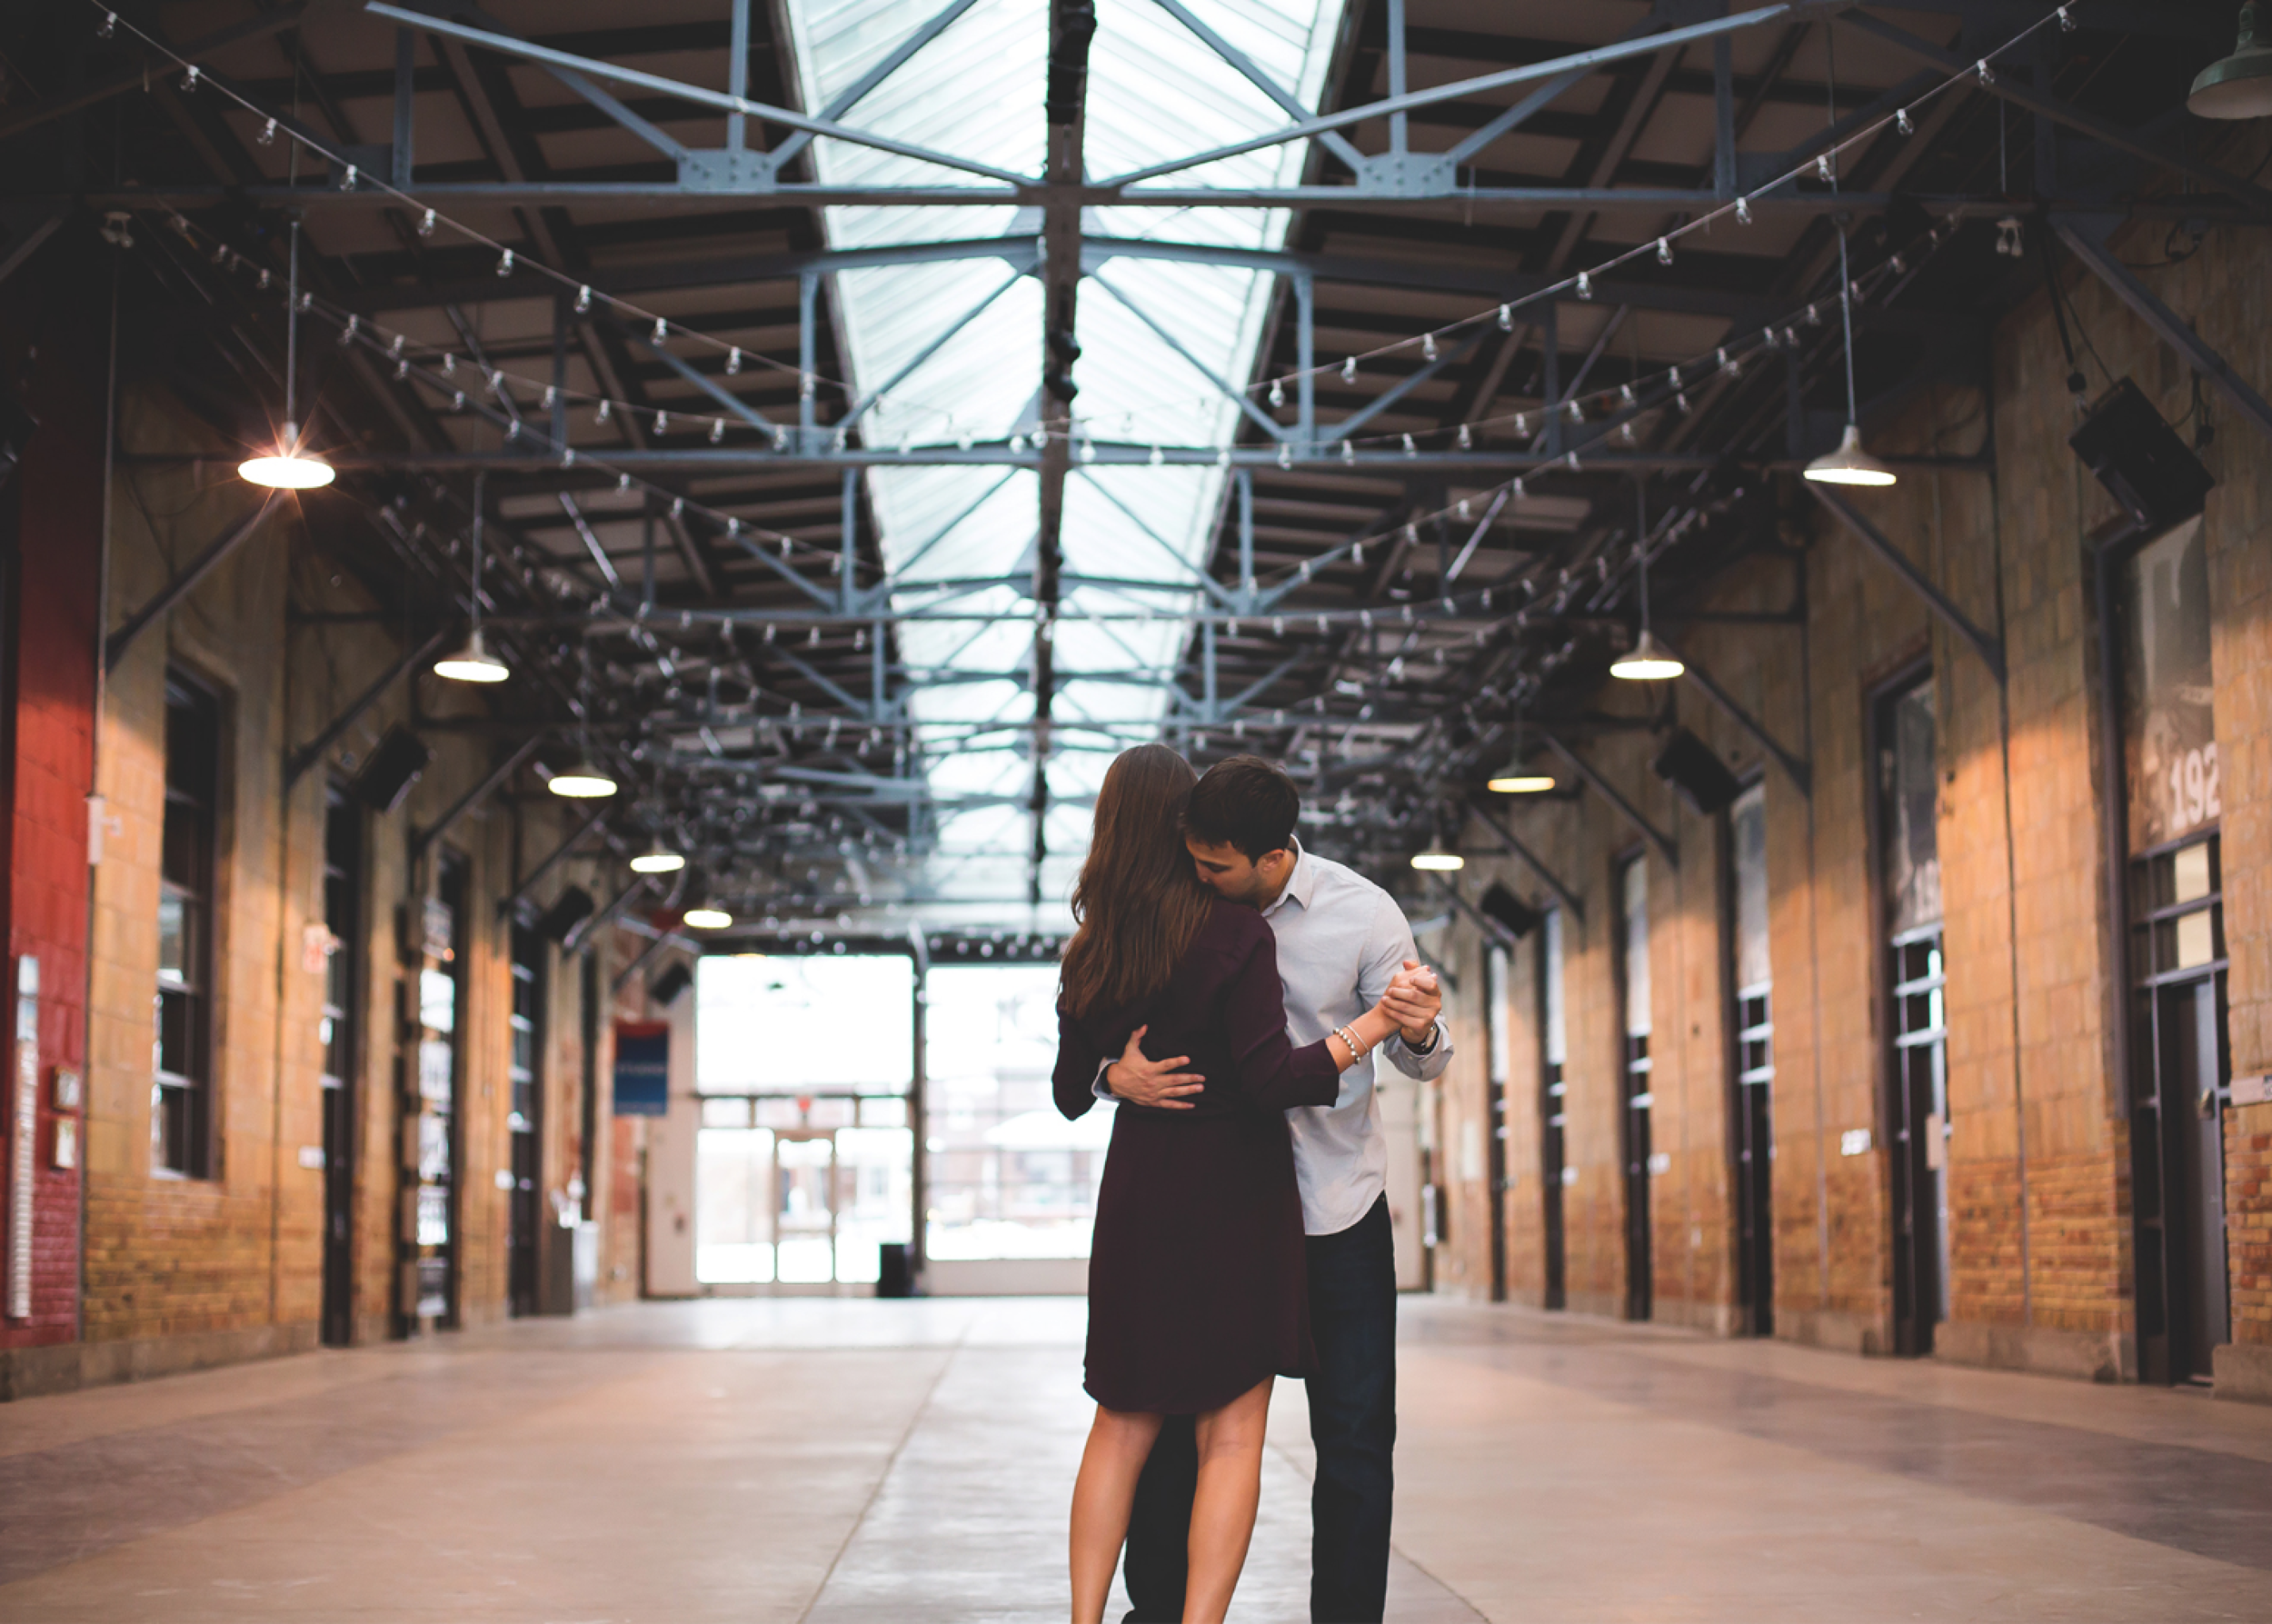 Engagement-Session-Downtown-Toronto-Hamilton-Burlington-Oakville-Niagara-Wedding-Photographer-Engaged-Photography-Artscape-Wynchwood-Barn-Urban-HamOnt-Engaged-Moments-by-Lauren-Photo-Image-2.png